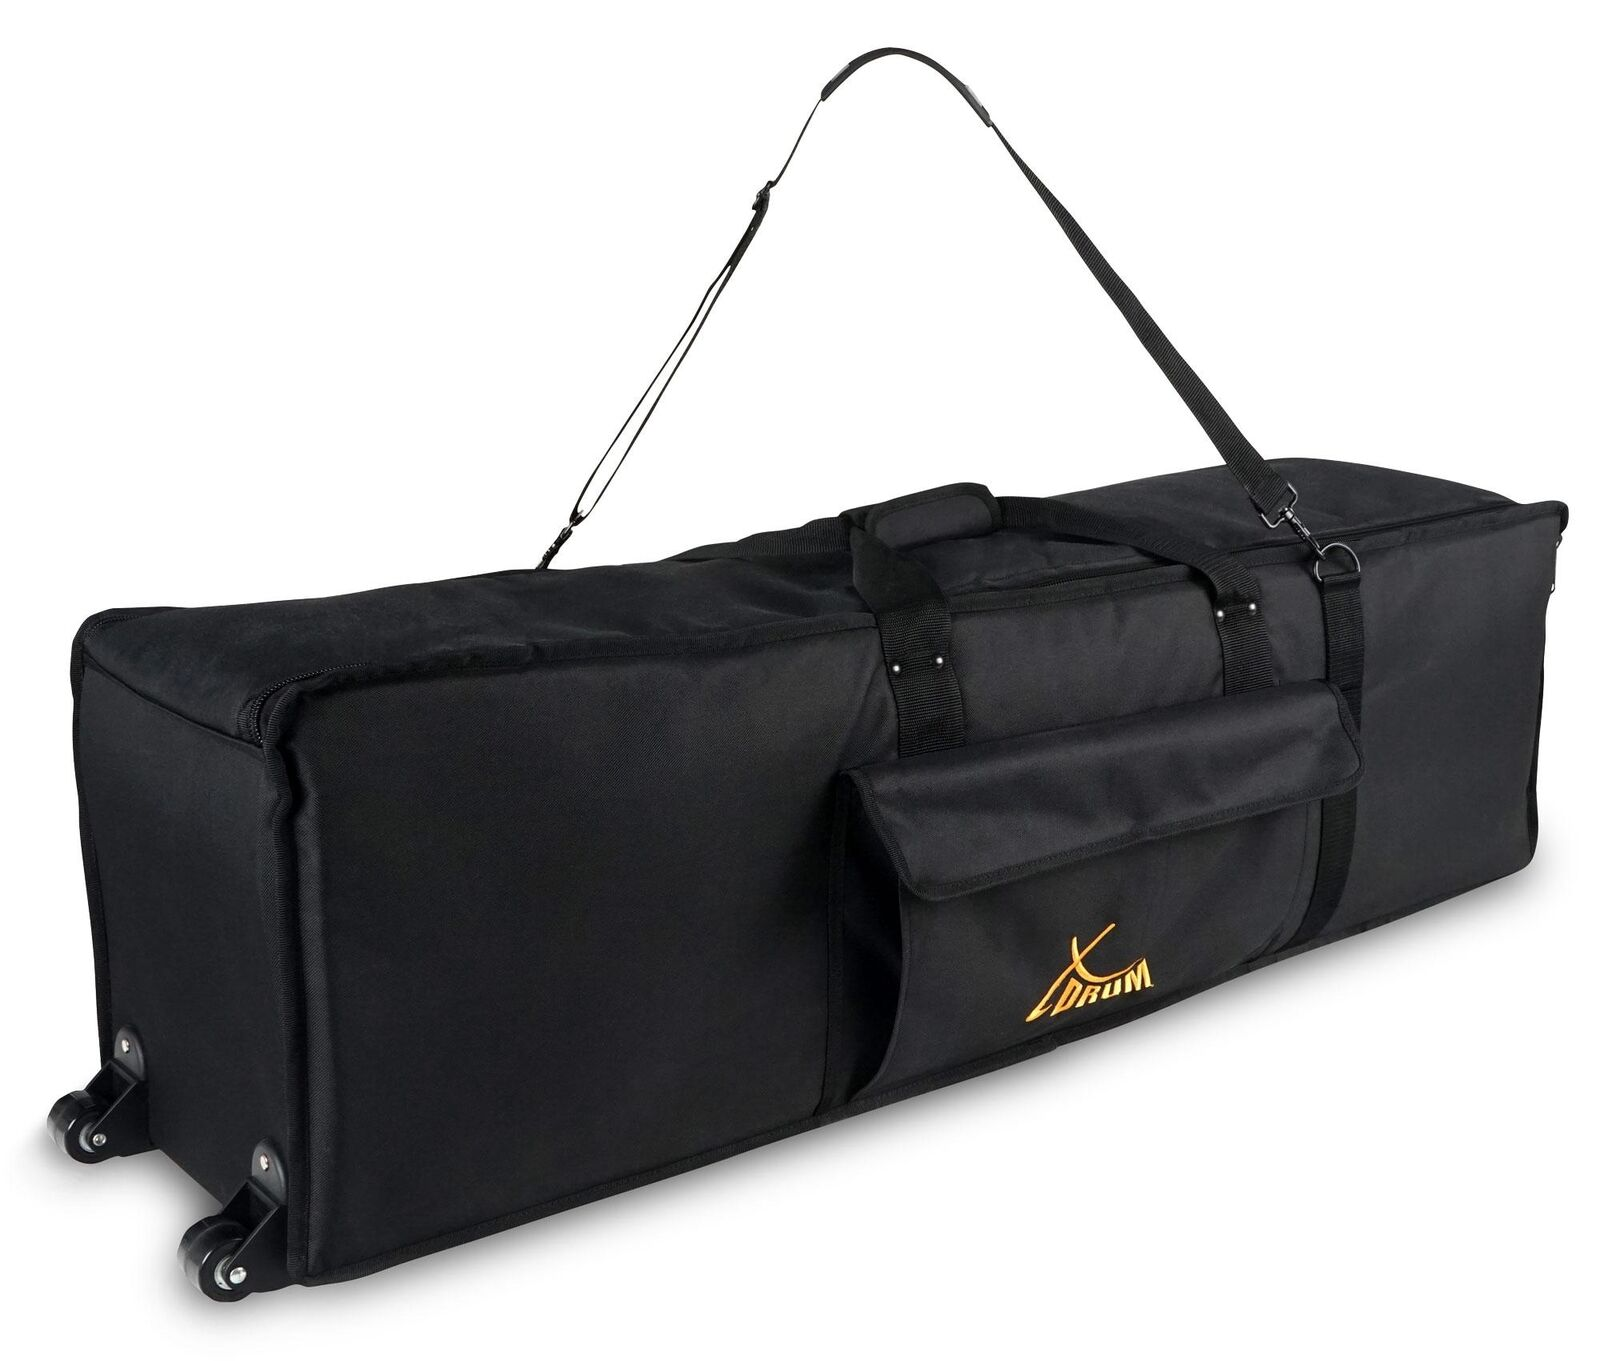 Supporto altoparlanti scatole Trolley Borsa Treppiede percussioni Hardware Bag ROLLBAR piccolo